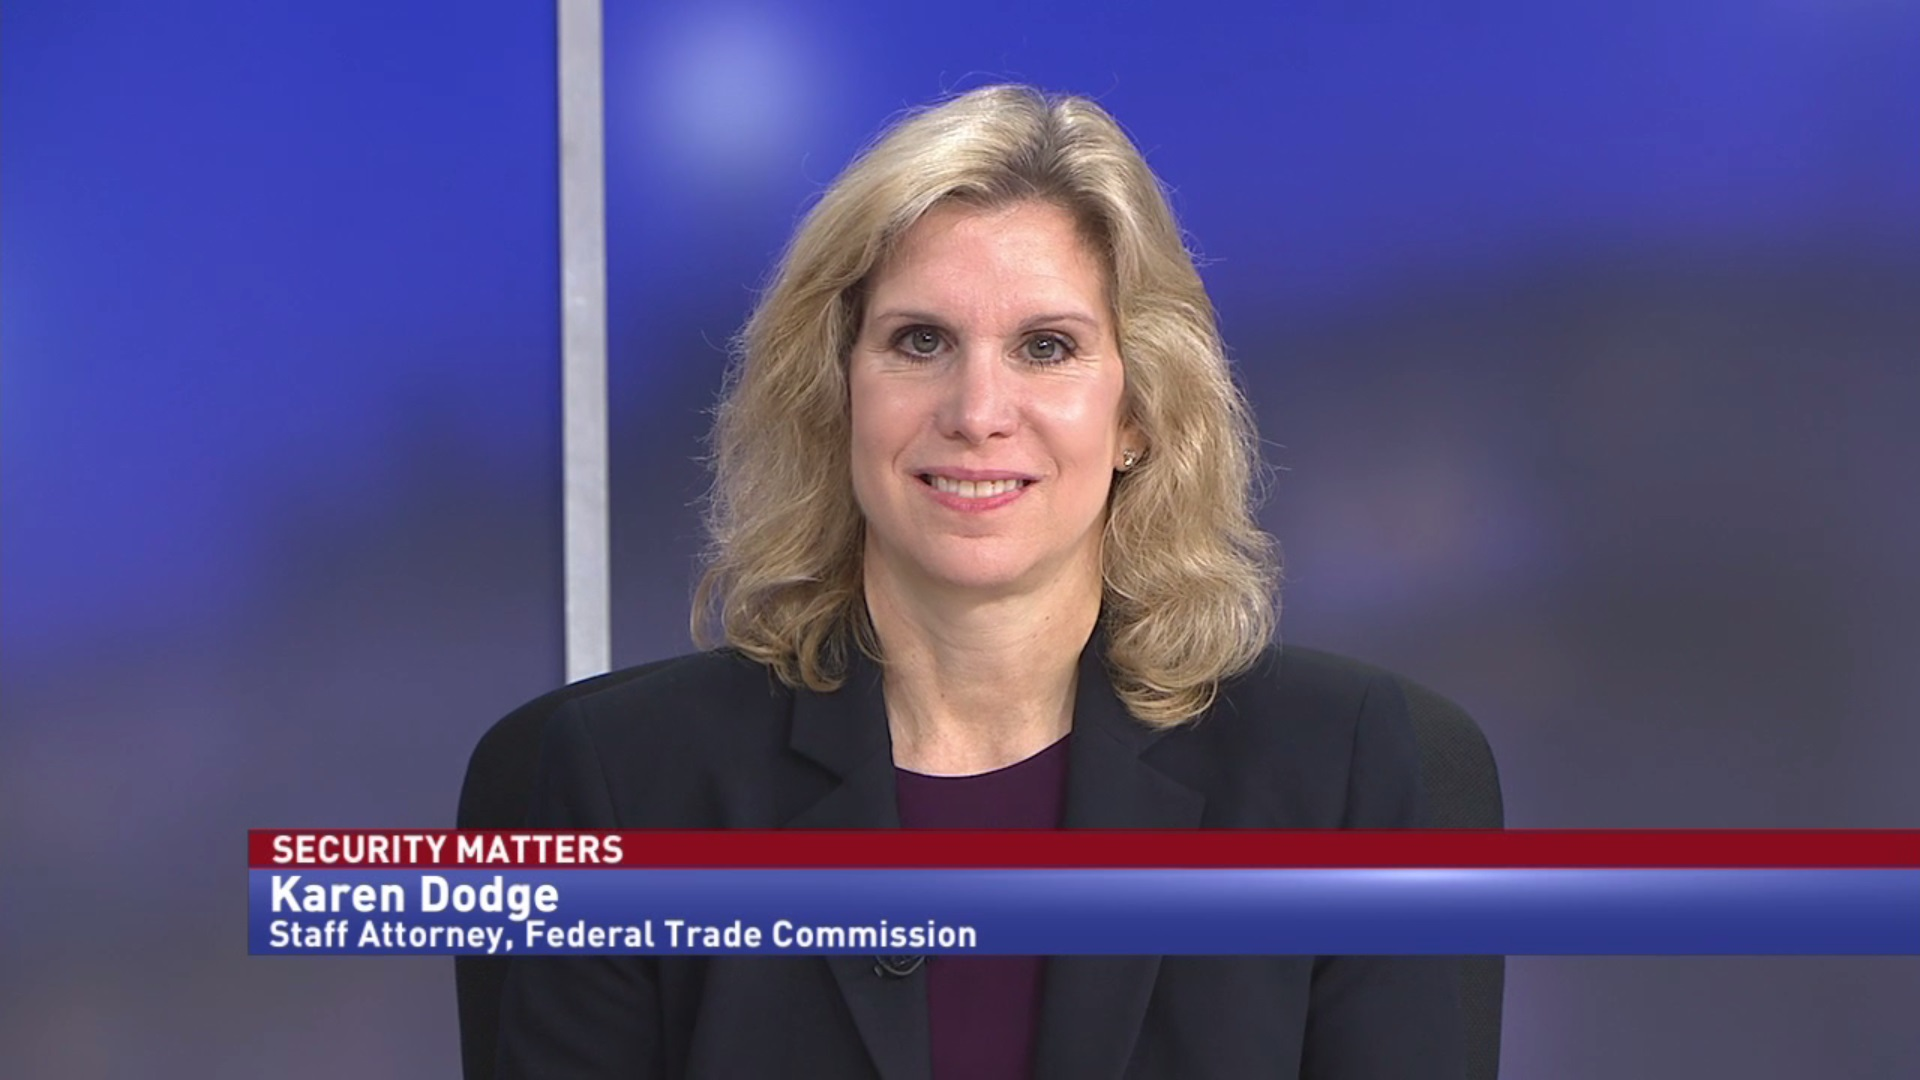 FTC work saves almost $600M in scam recovery